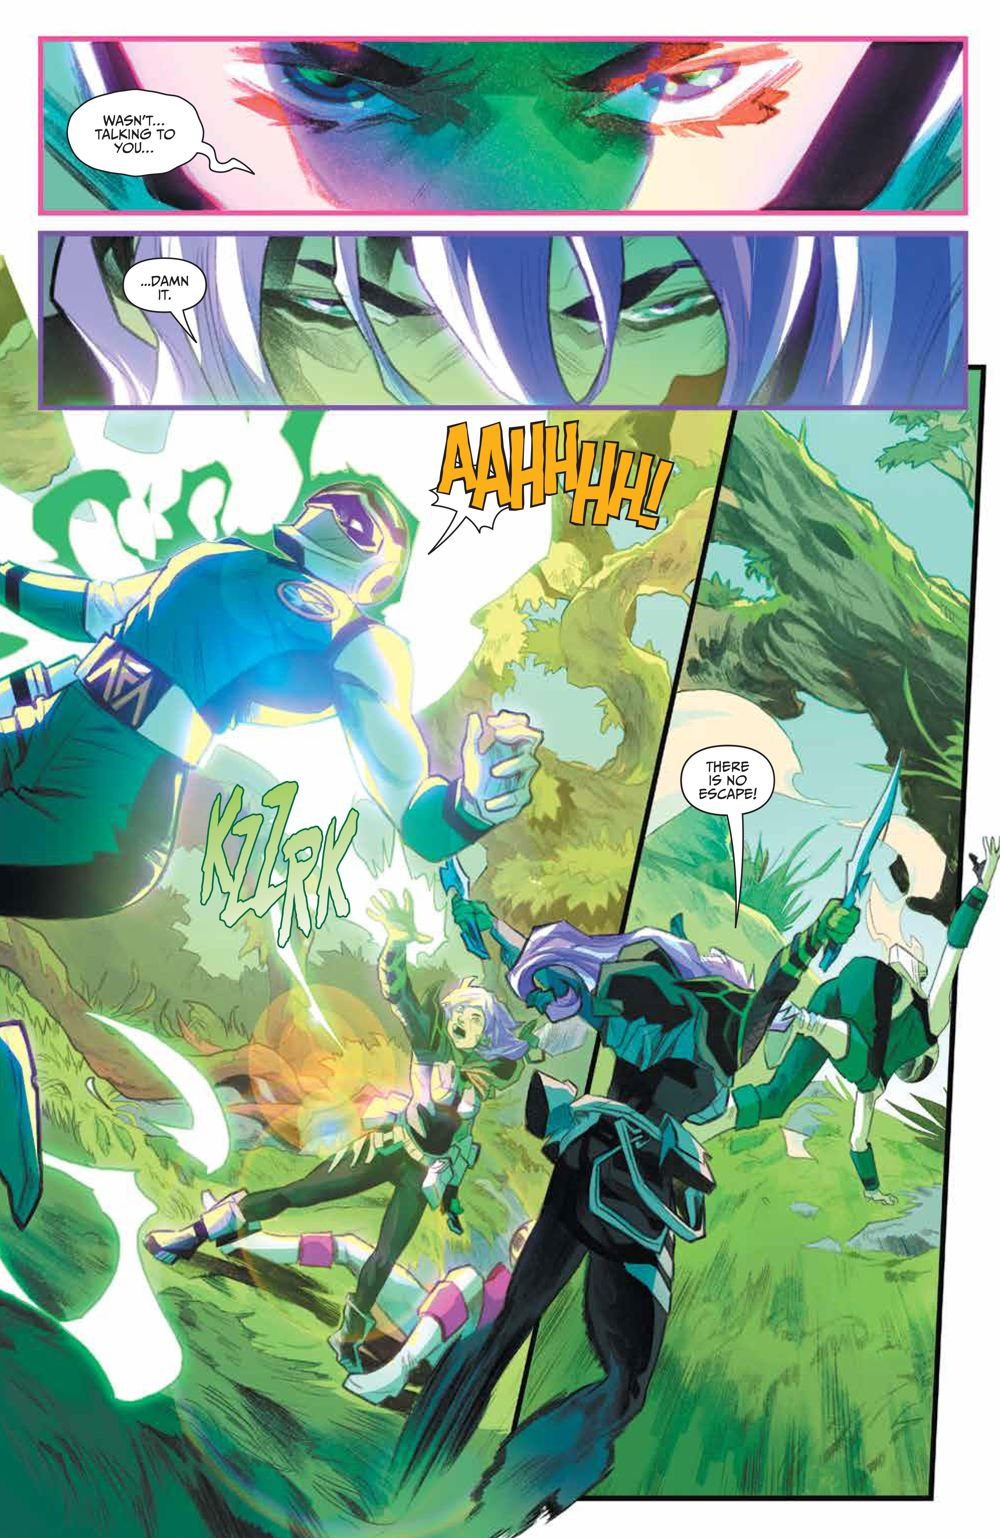 PR_Unlimited_HeirDarkness_001_PRESS_5 ComicList Previews: POWER RANGERS UNLIMITED HEIR TO THE DARKNESS #1